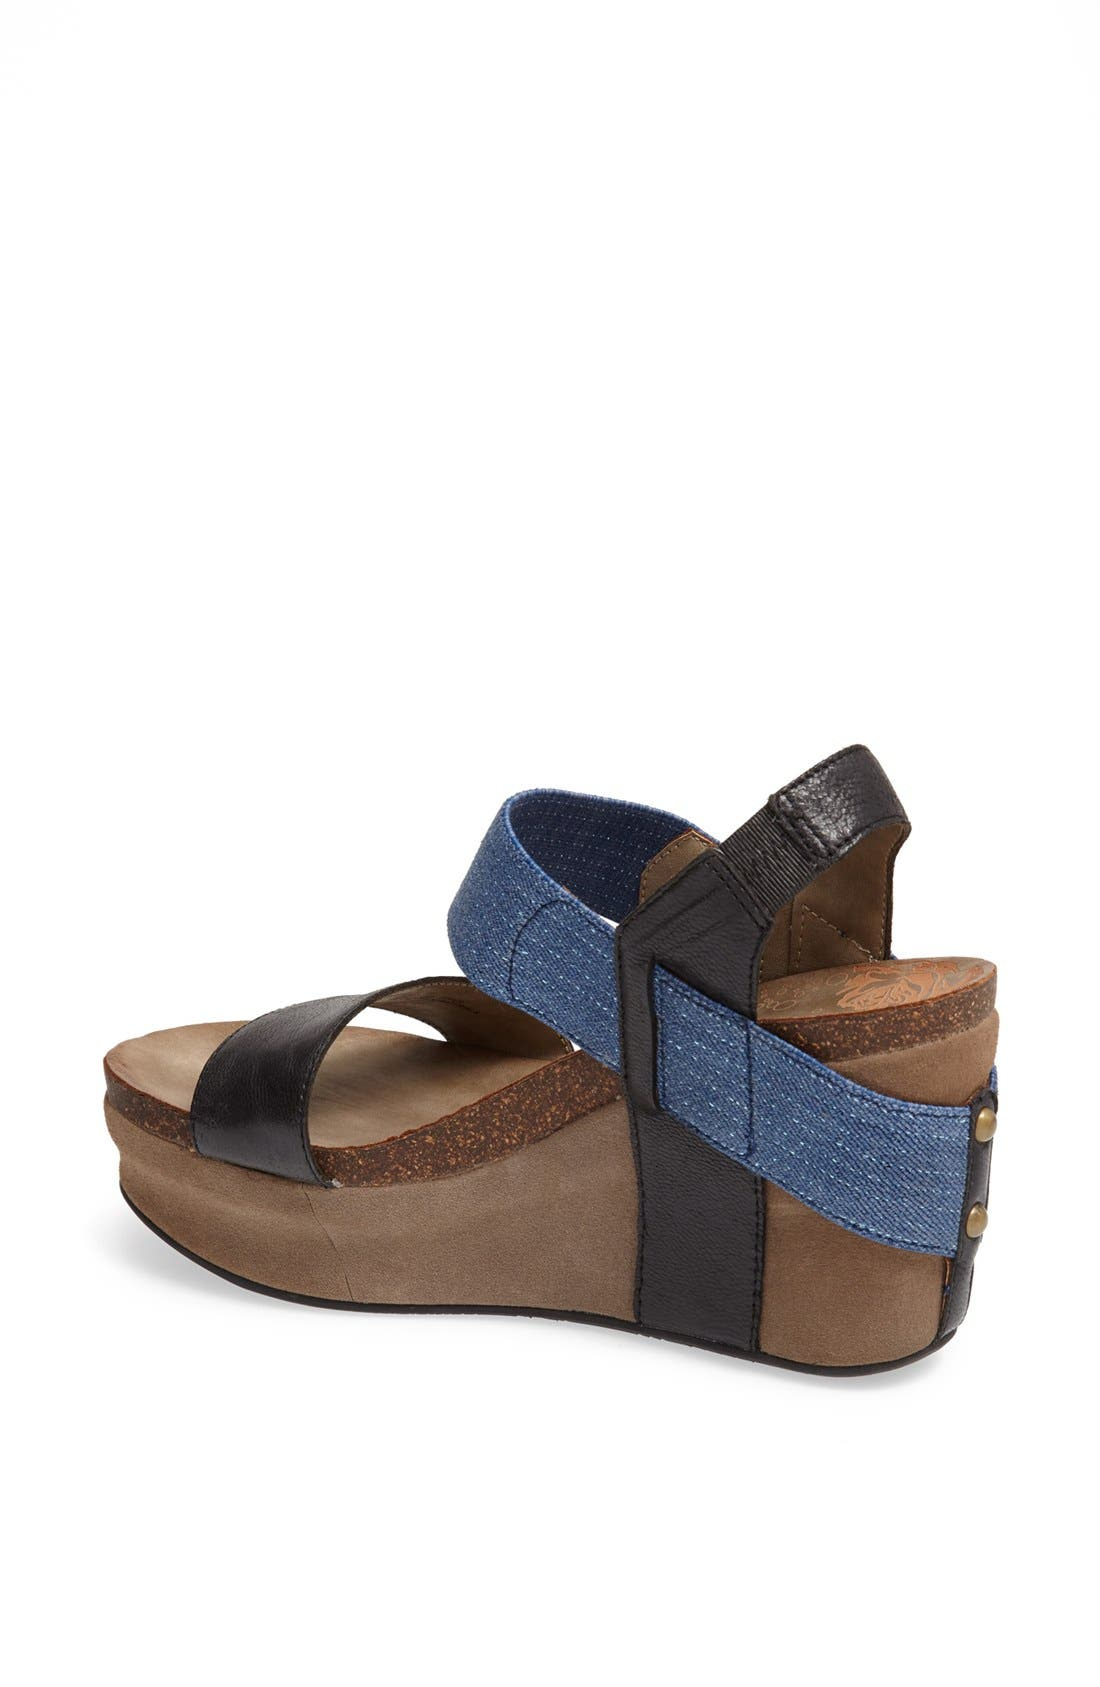 'Bushnell' Wedge Sandal,                             Alternate thumbnail 50, color,